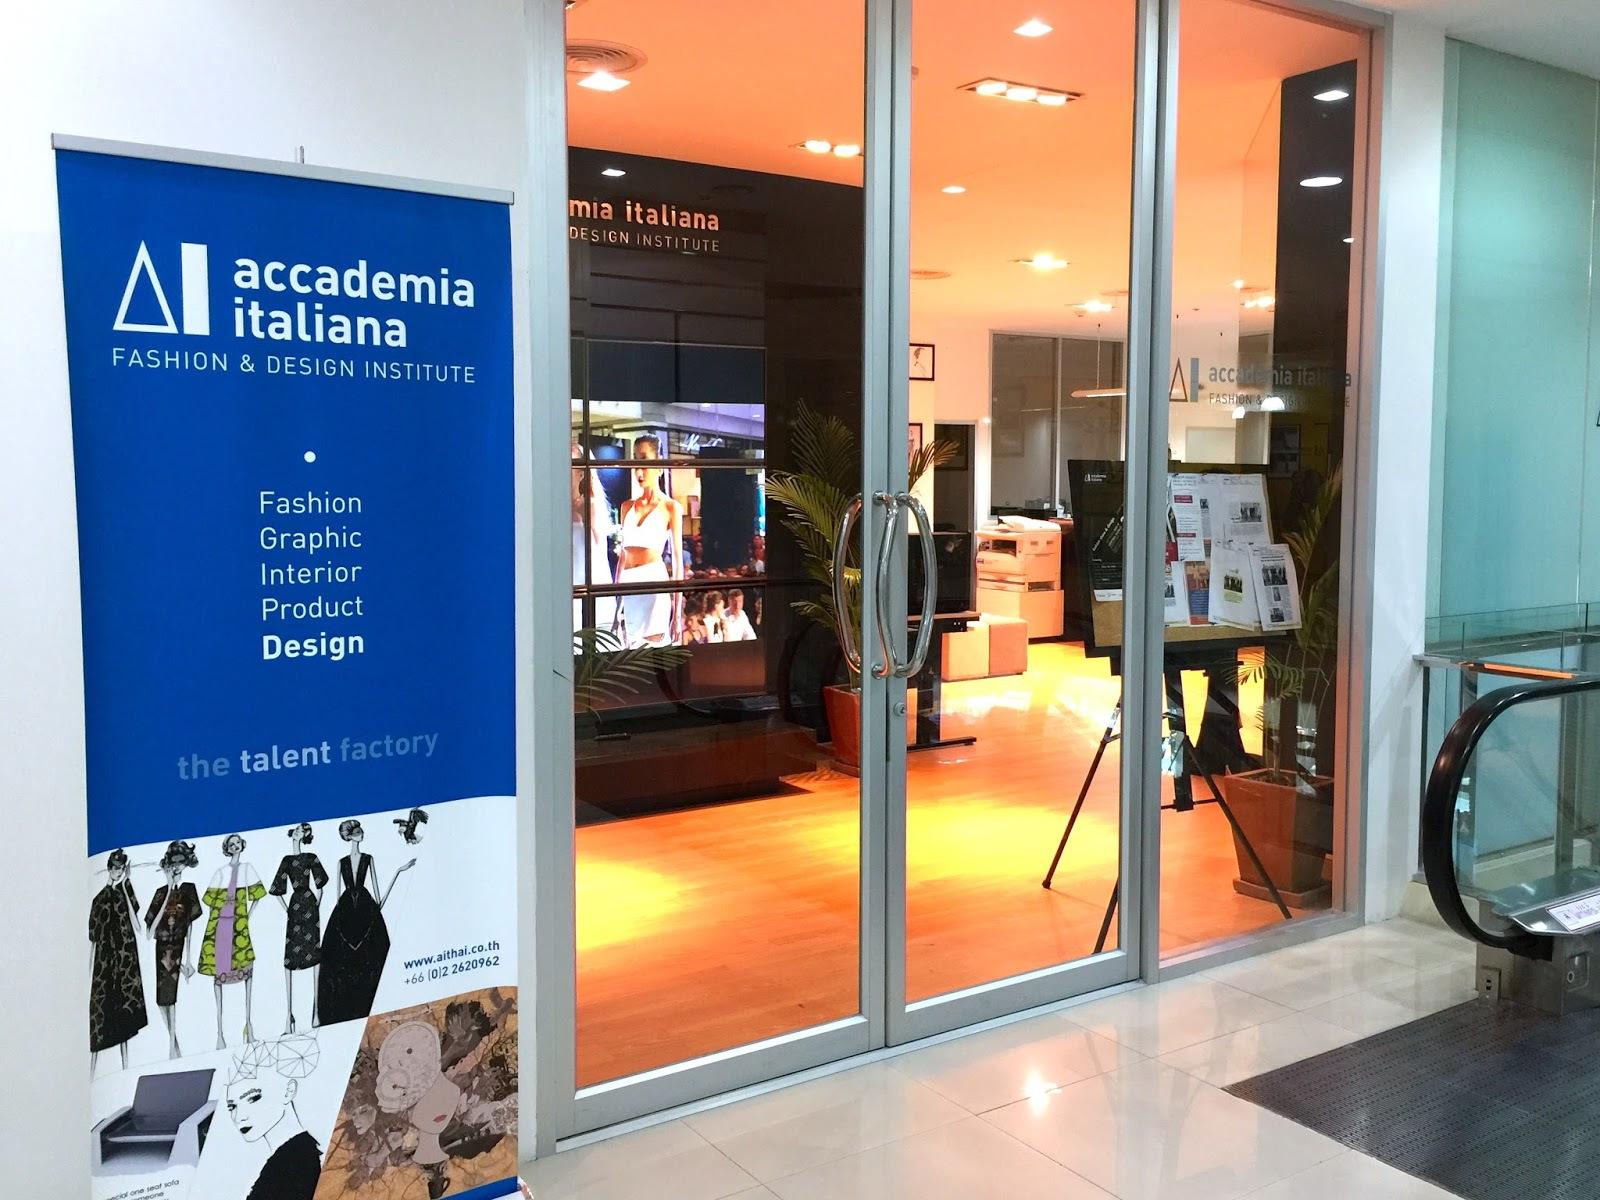 Siam Style Insider Short Courses At Accademia Italiana Bangkok Part I